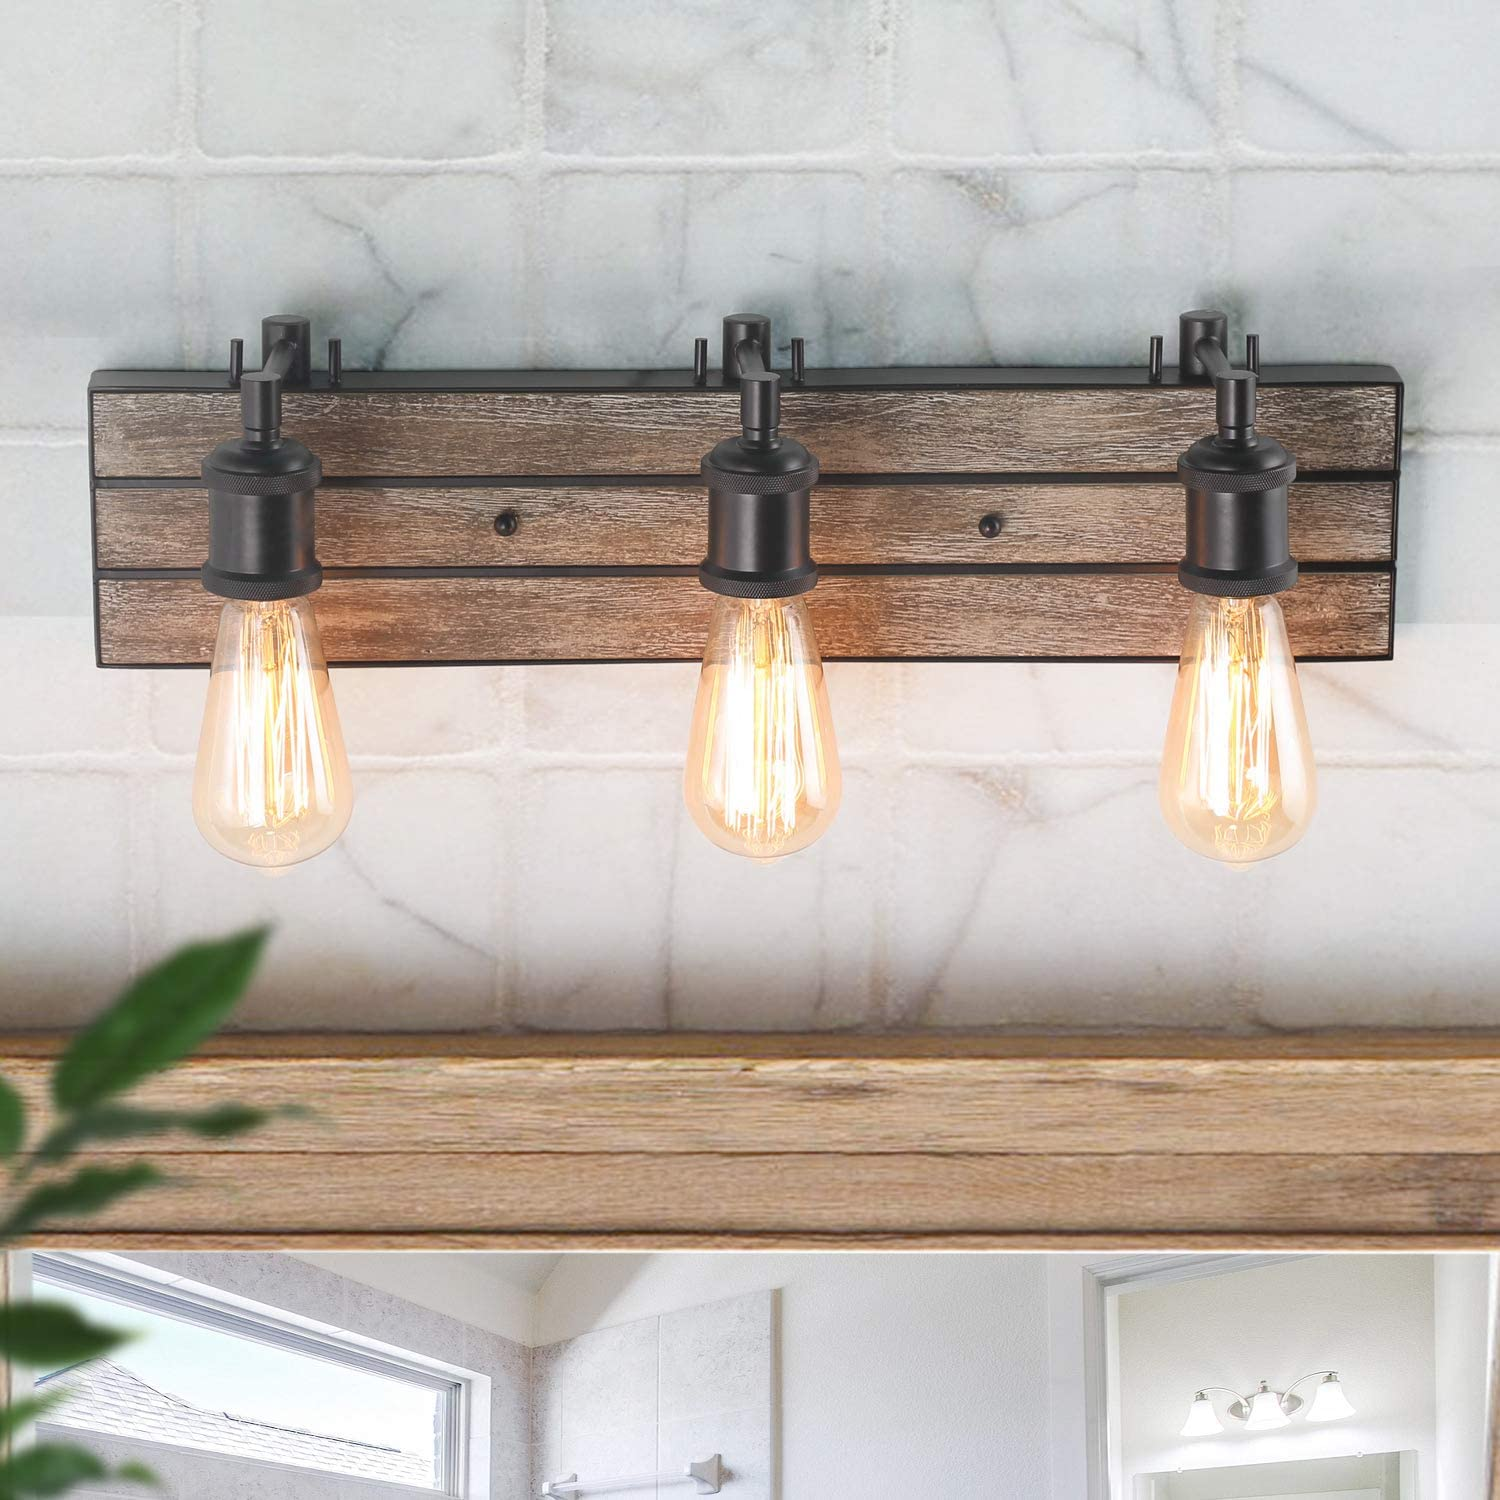 Log Barn Vanity Lights Bathroom Fixtures In Rustic Wood And Oil Rubbed Metal Finish Farmhouse Wall Sconces With Adjustable Sockets Over Mirrors Amazon Com